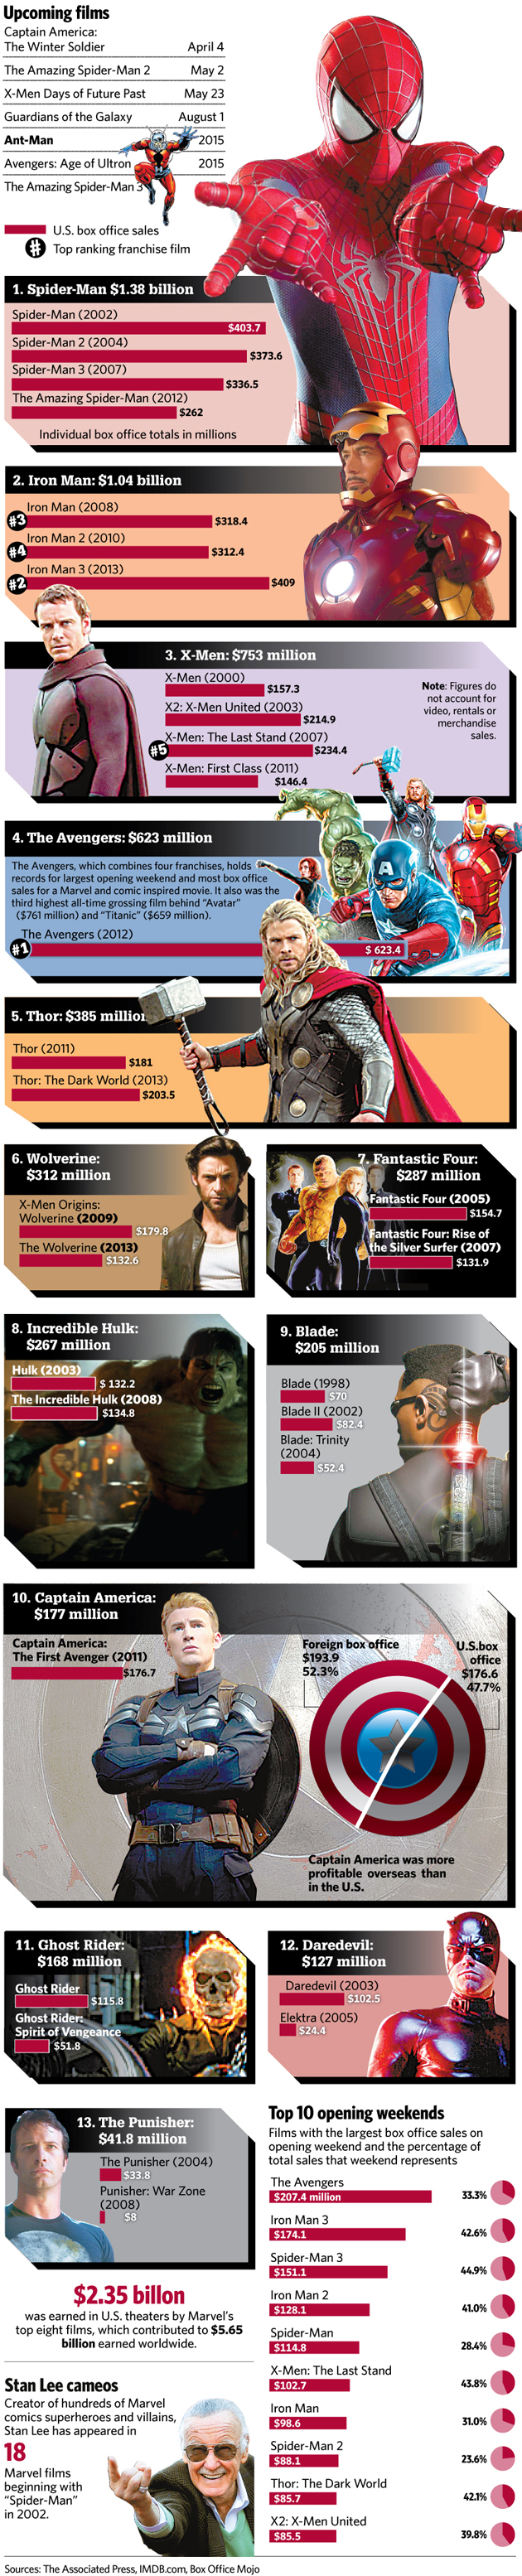 Marvel movies at the box office